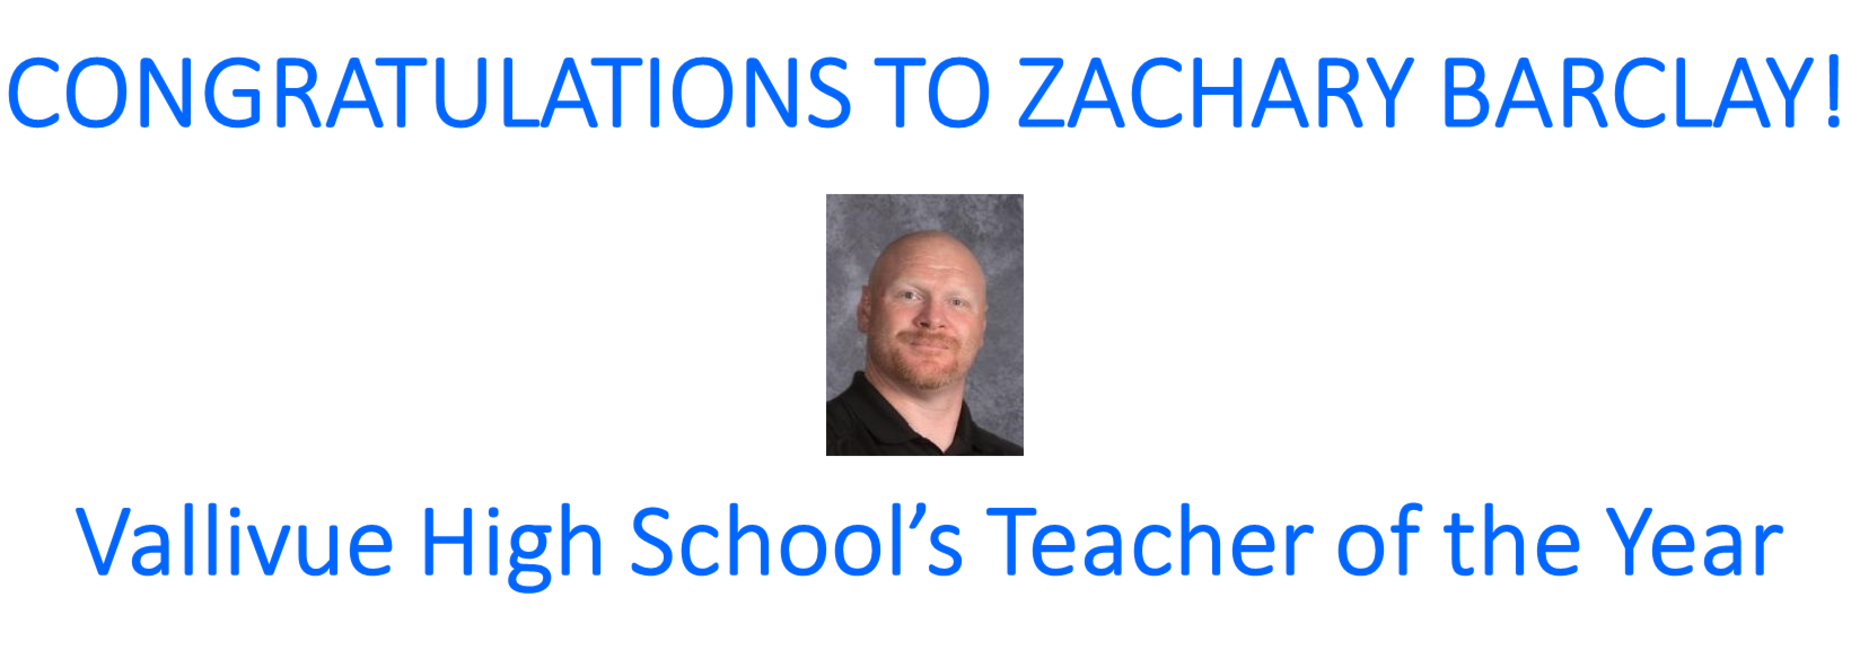 Teacher of the Year Zach Barclay